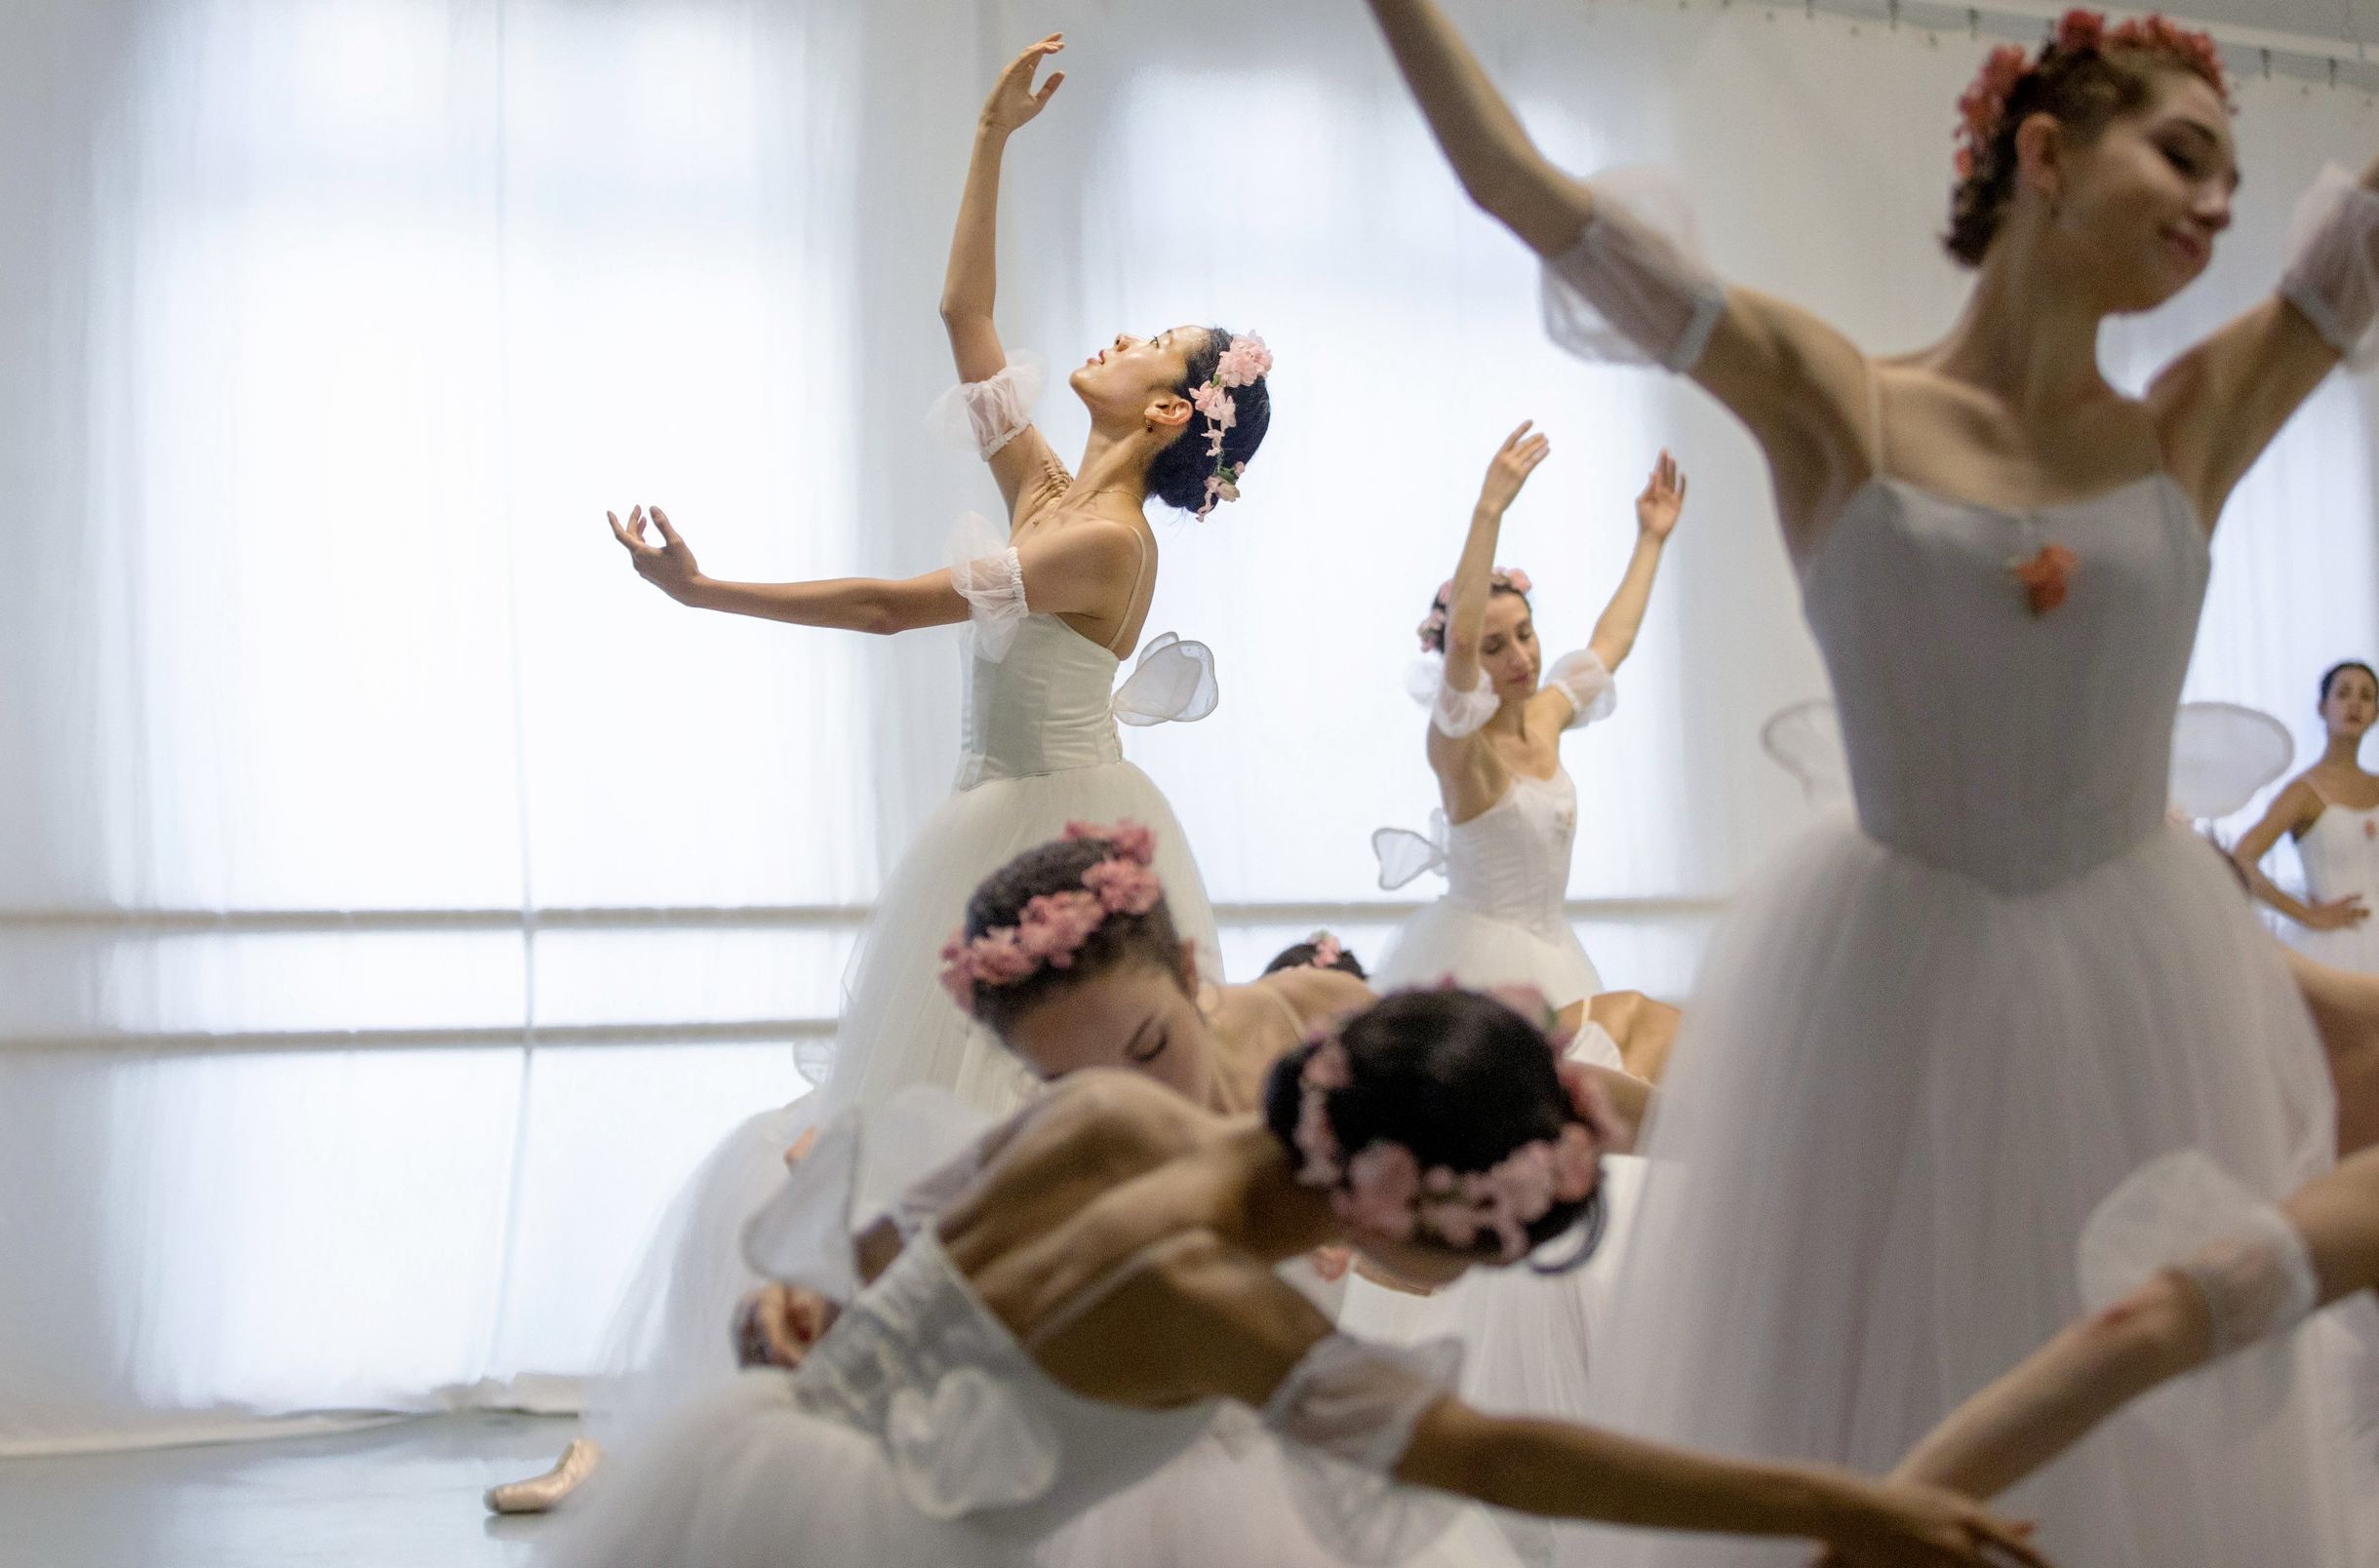 Eun Won Lee was South Korea's superstar ballerina. Now, she's given it up to try to make it in America, dancing with the Washington Ballet. She dances in a dress rehearsal of Les Sylphides before her performance at the Kennedy Center.